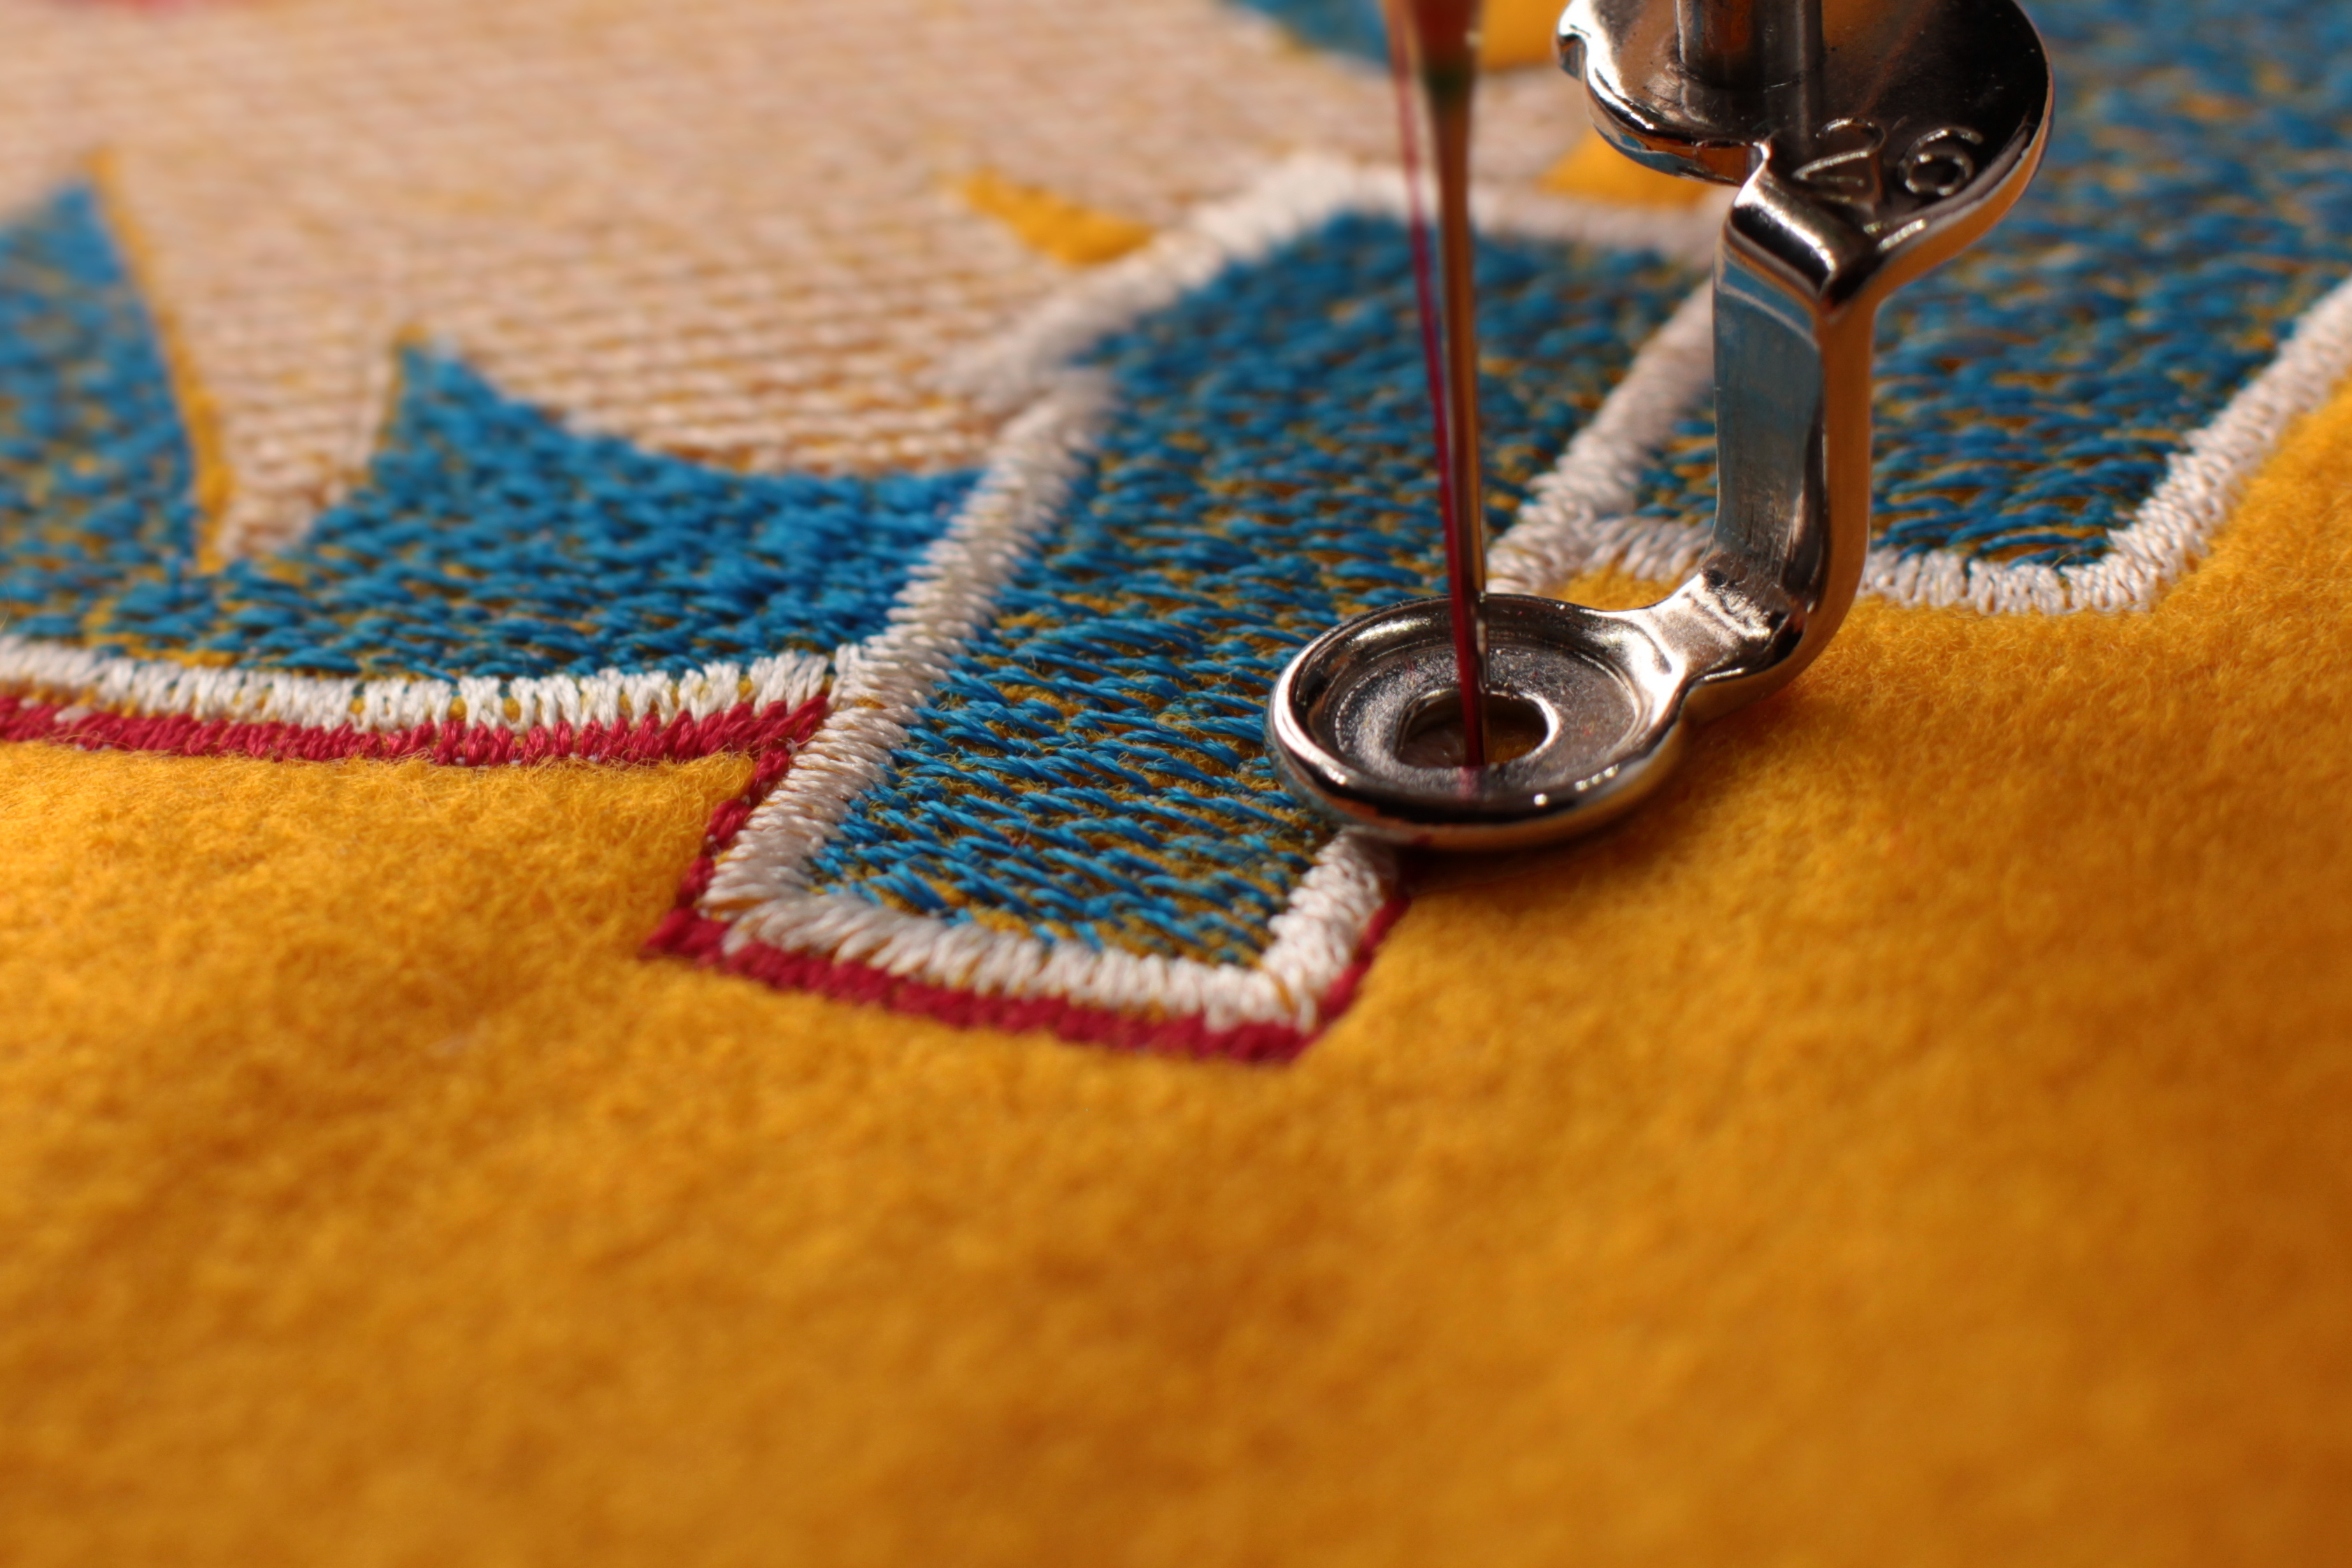 close up of embroidery